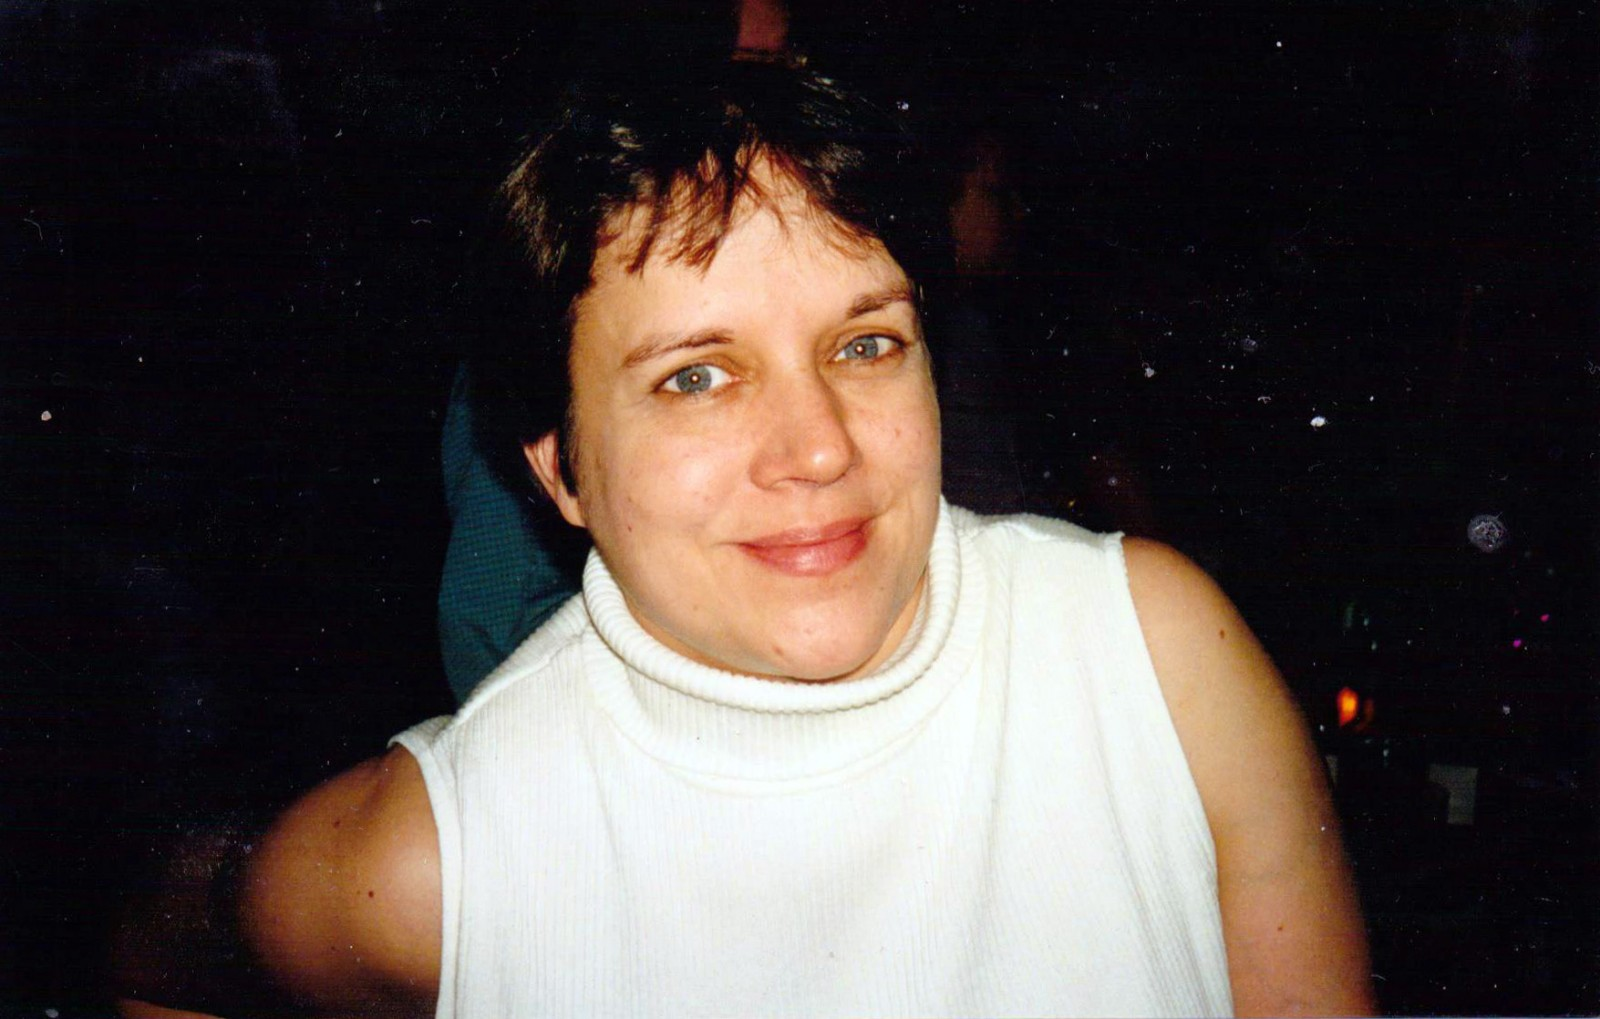 Mum drowned herself the day after severely autistic daughter was denied residential care